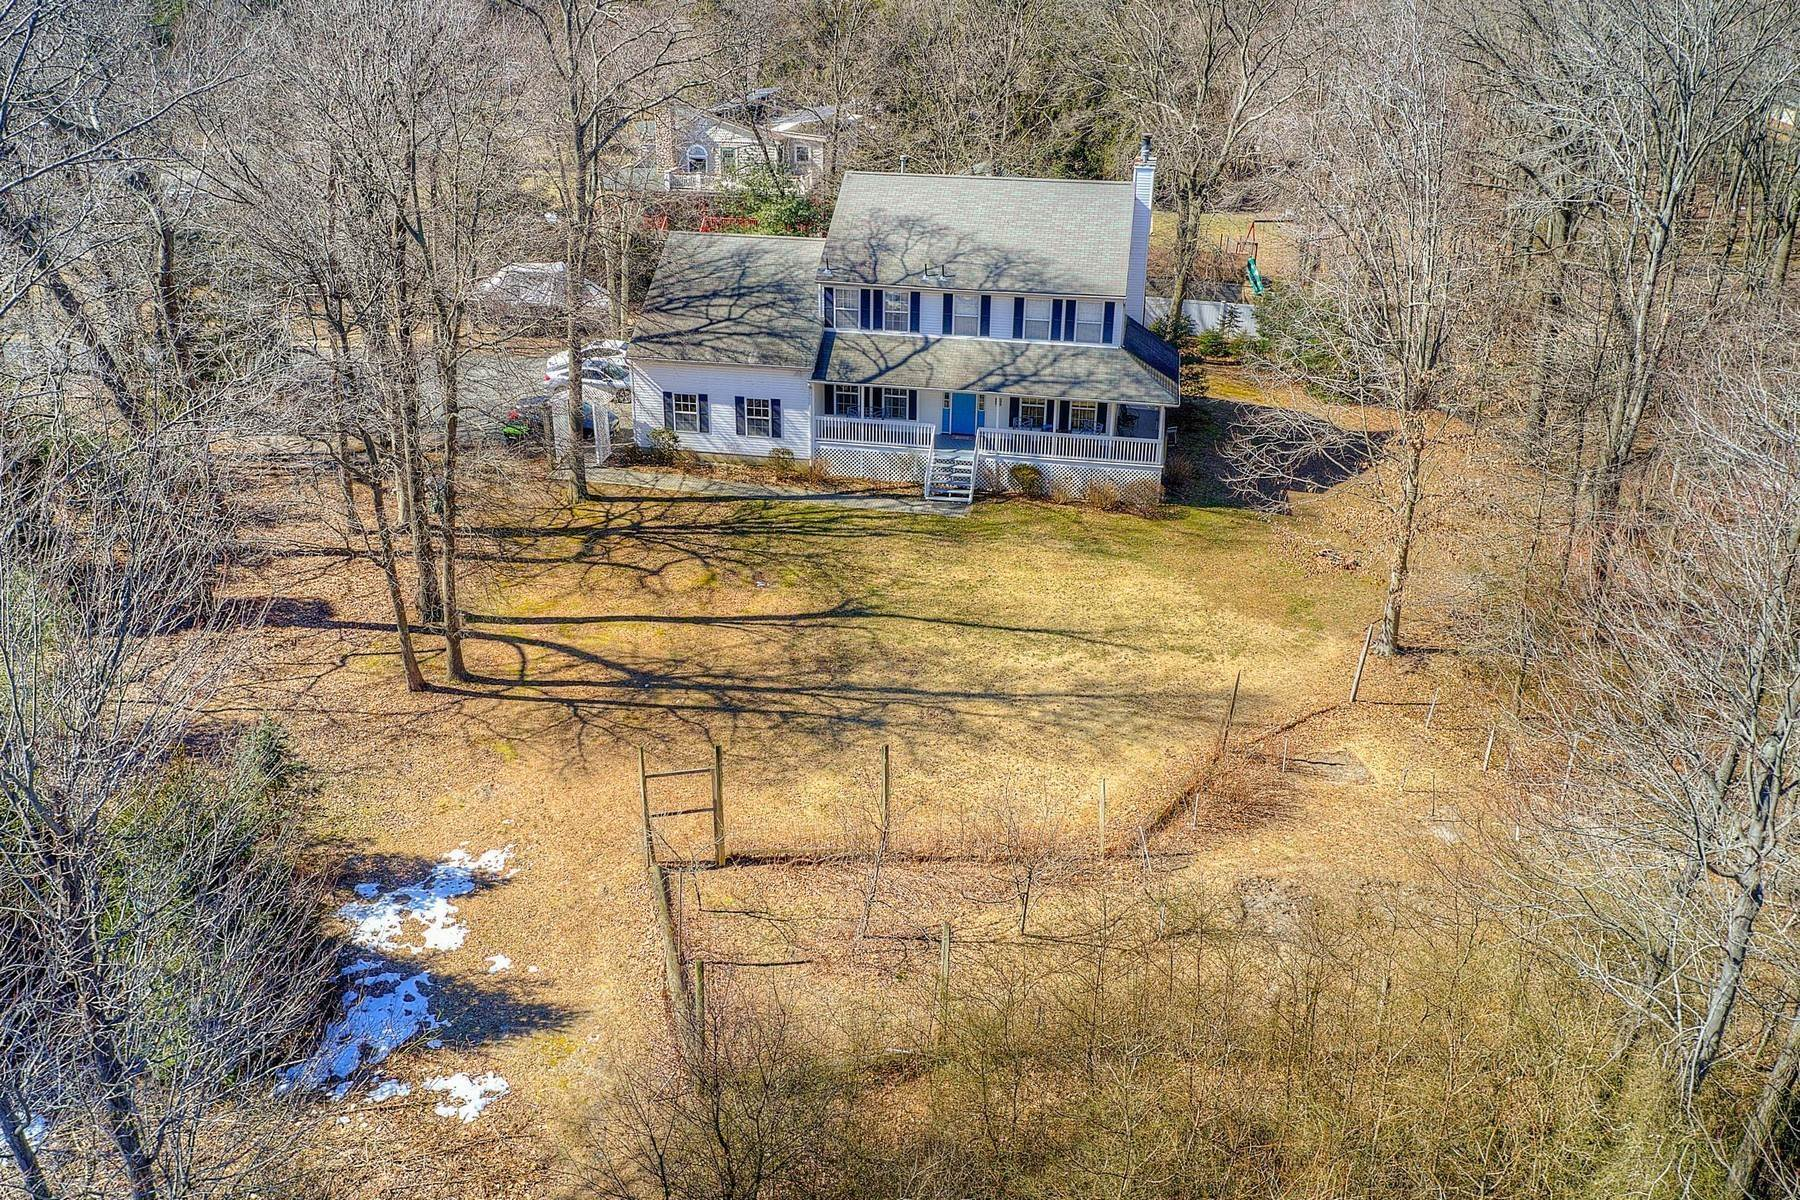 Land for Sale at 292 B Middle Road, Holmdel 292 Middle Road, B Holmdel, New Jersey 07733 United States